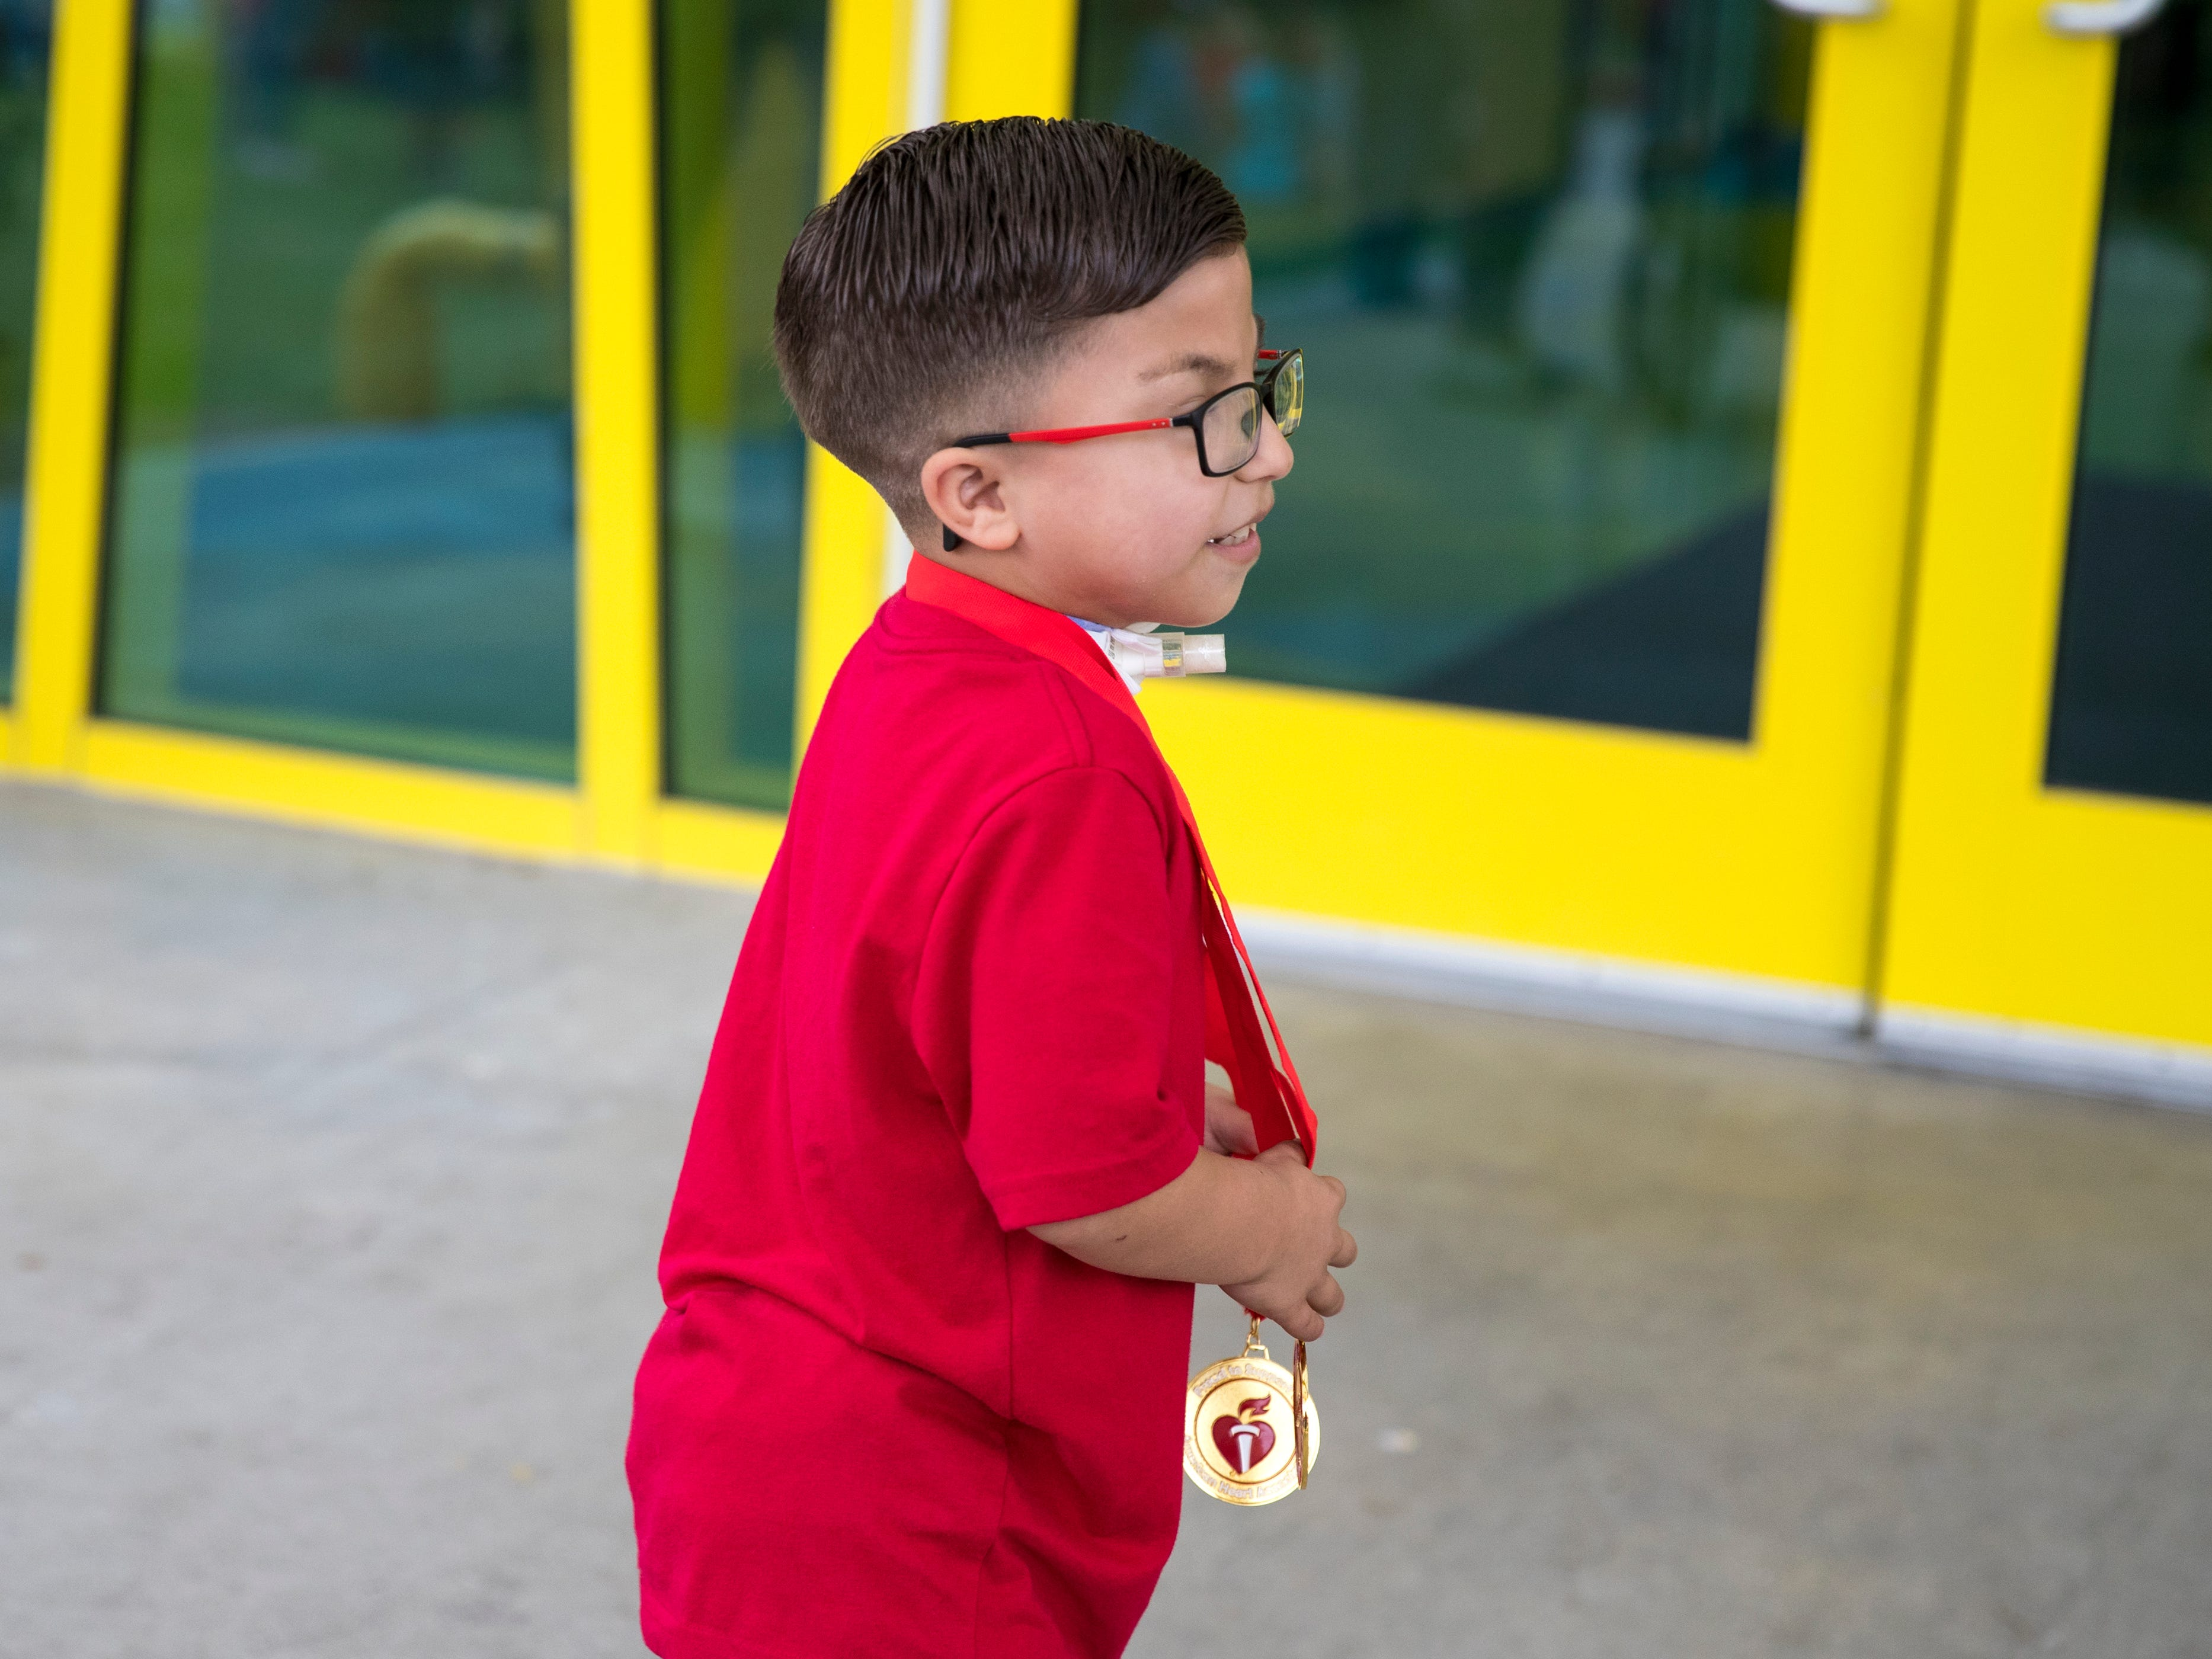 """Ethann Valdez, 9, leads a parade back into the school at Garcia Elementary School on Wednesday, April 17, 2019. Diagnosed at the age of five with geleophysic dysplasia (known as dwarfism), Ethann will be out of school for the rest of the year as he undergoes open heart surgery for a valve replacement to the main aorta of his heart. The school wanted to send him off with a """"Best Wishes Parade"""" before he left."""